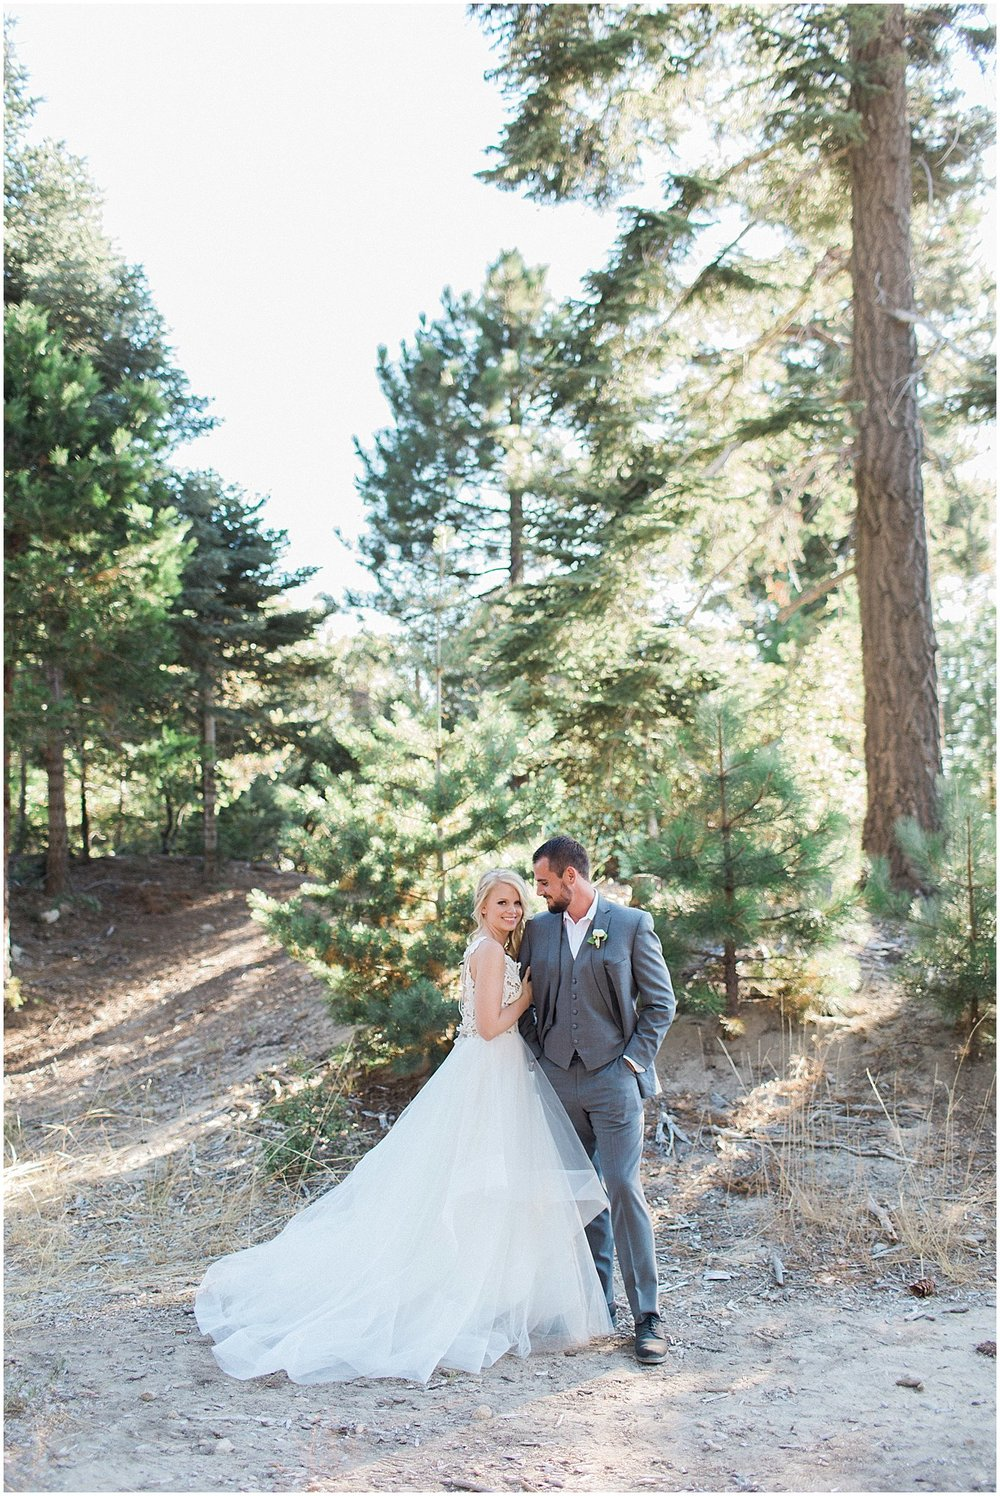 Bride & Groom First Look in the Forest featured on Style Me Pretty | Phoenix Wedding Planner | Megan Dileen Events